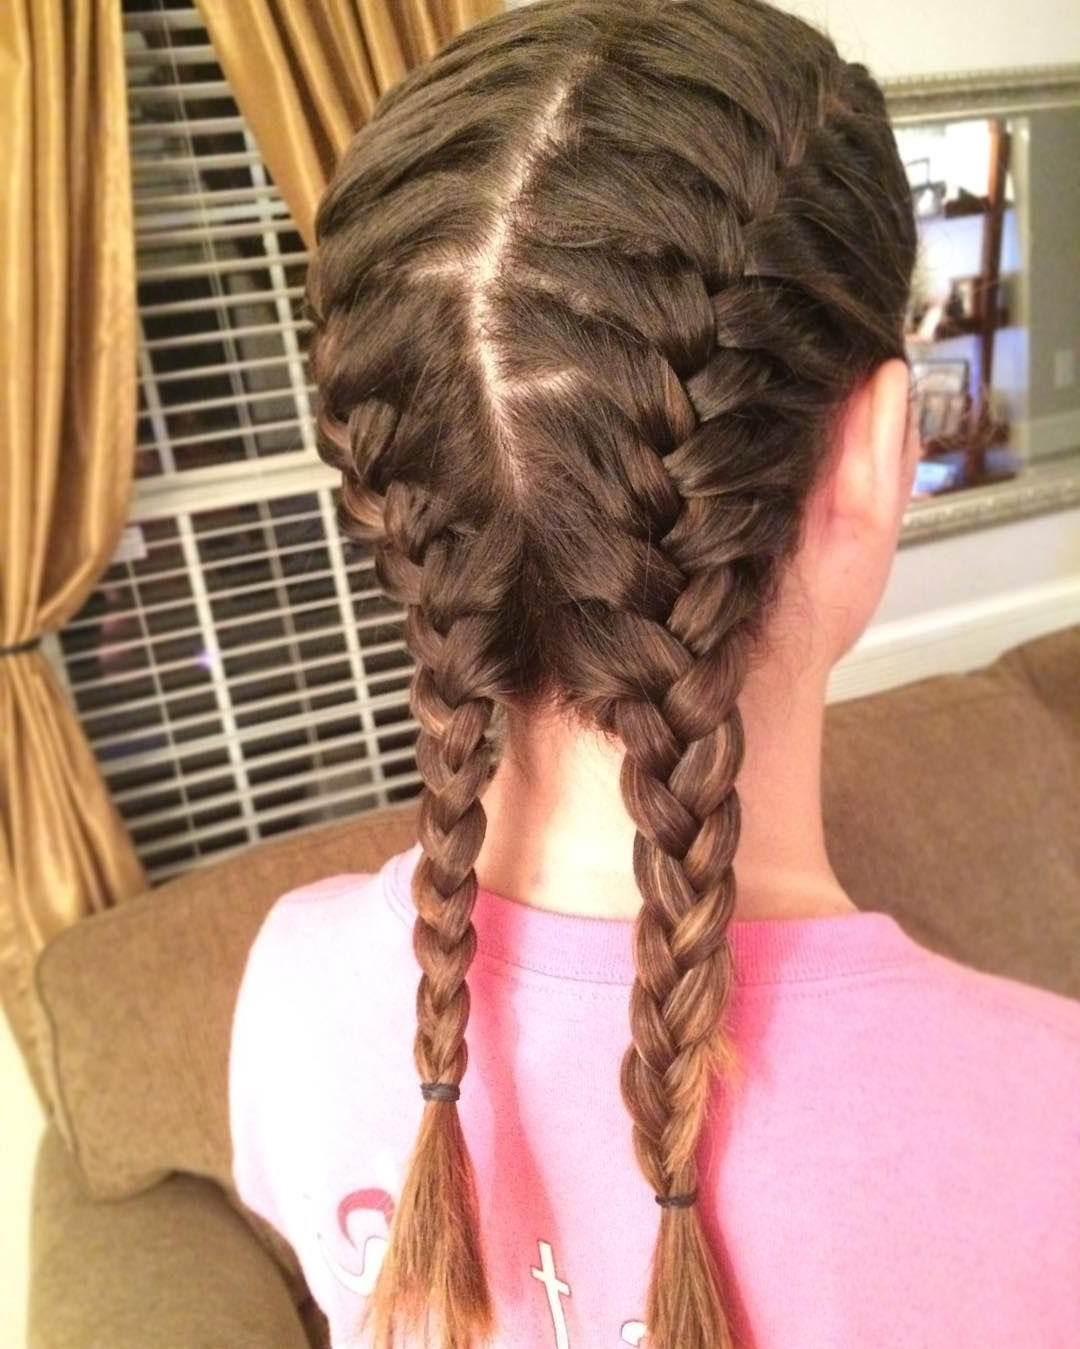 25 Sweet Pigtail Braids Hairstyles — French, Dutch, Fishtails Check With Well Liked Pigtails Braided Hairstyles (View 6 of 15)